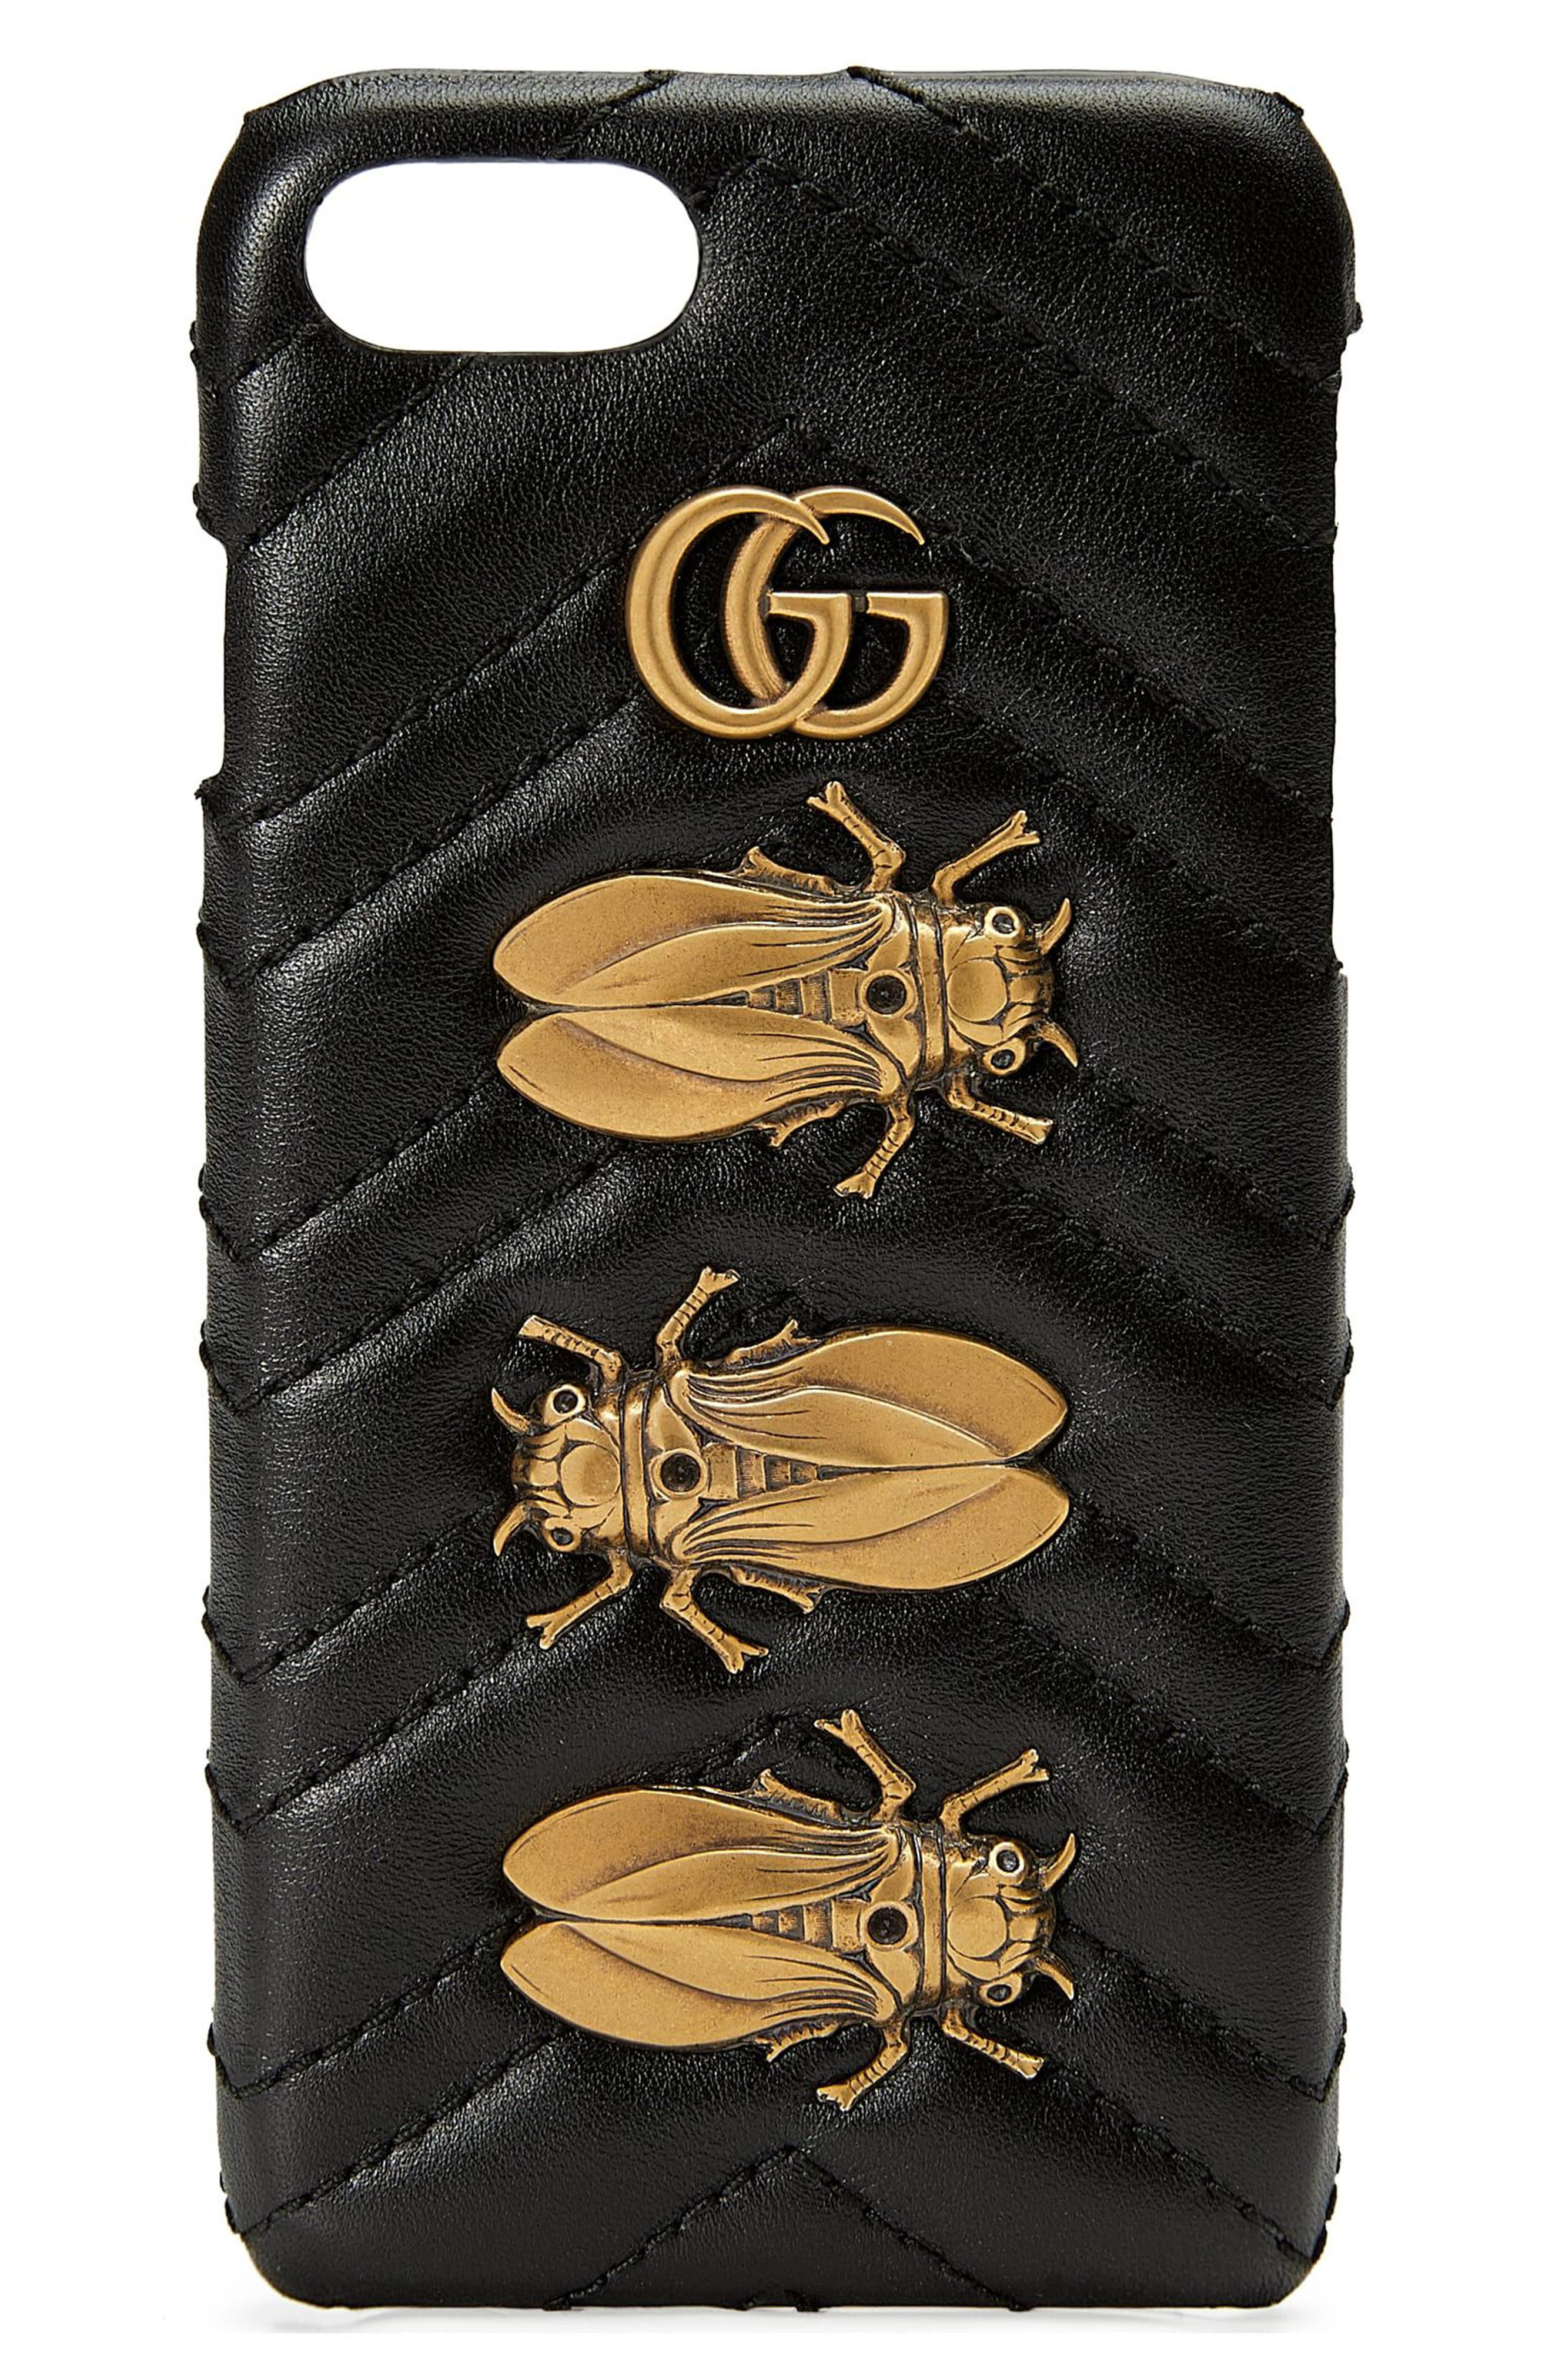 gucci iphone 7 case. main image - gucci gg marmont 2.0 matelassé leather iphone 7 case iphone